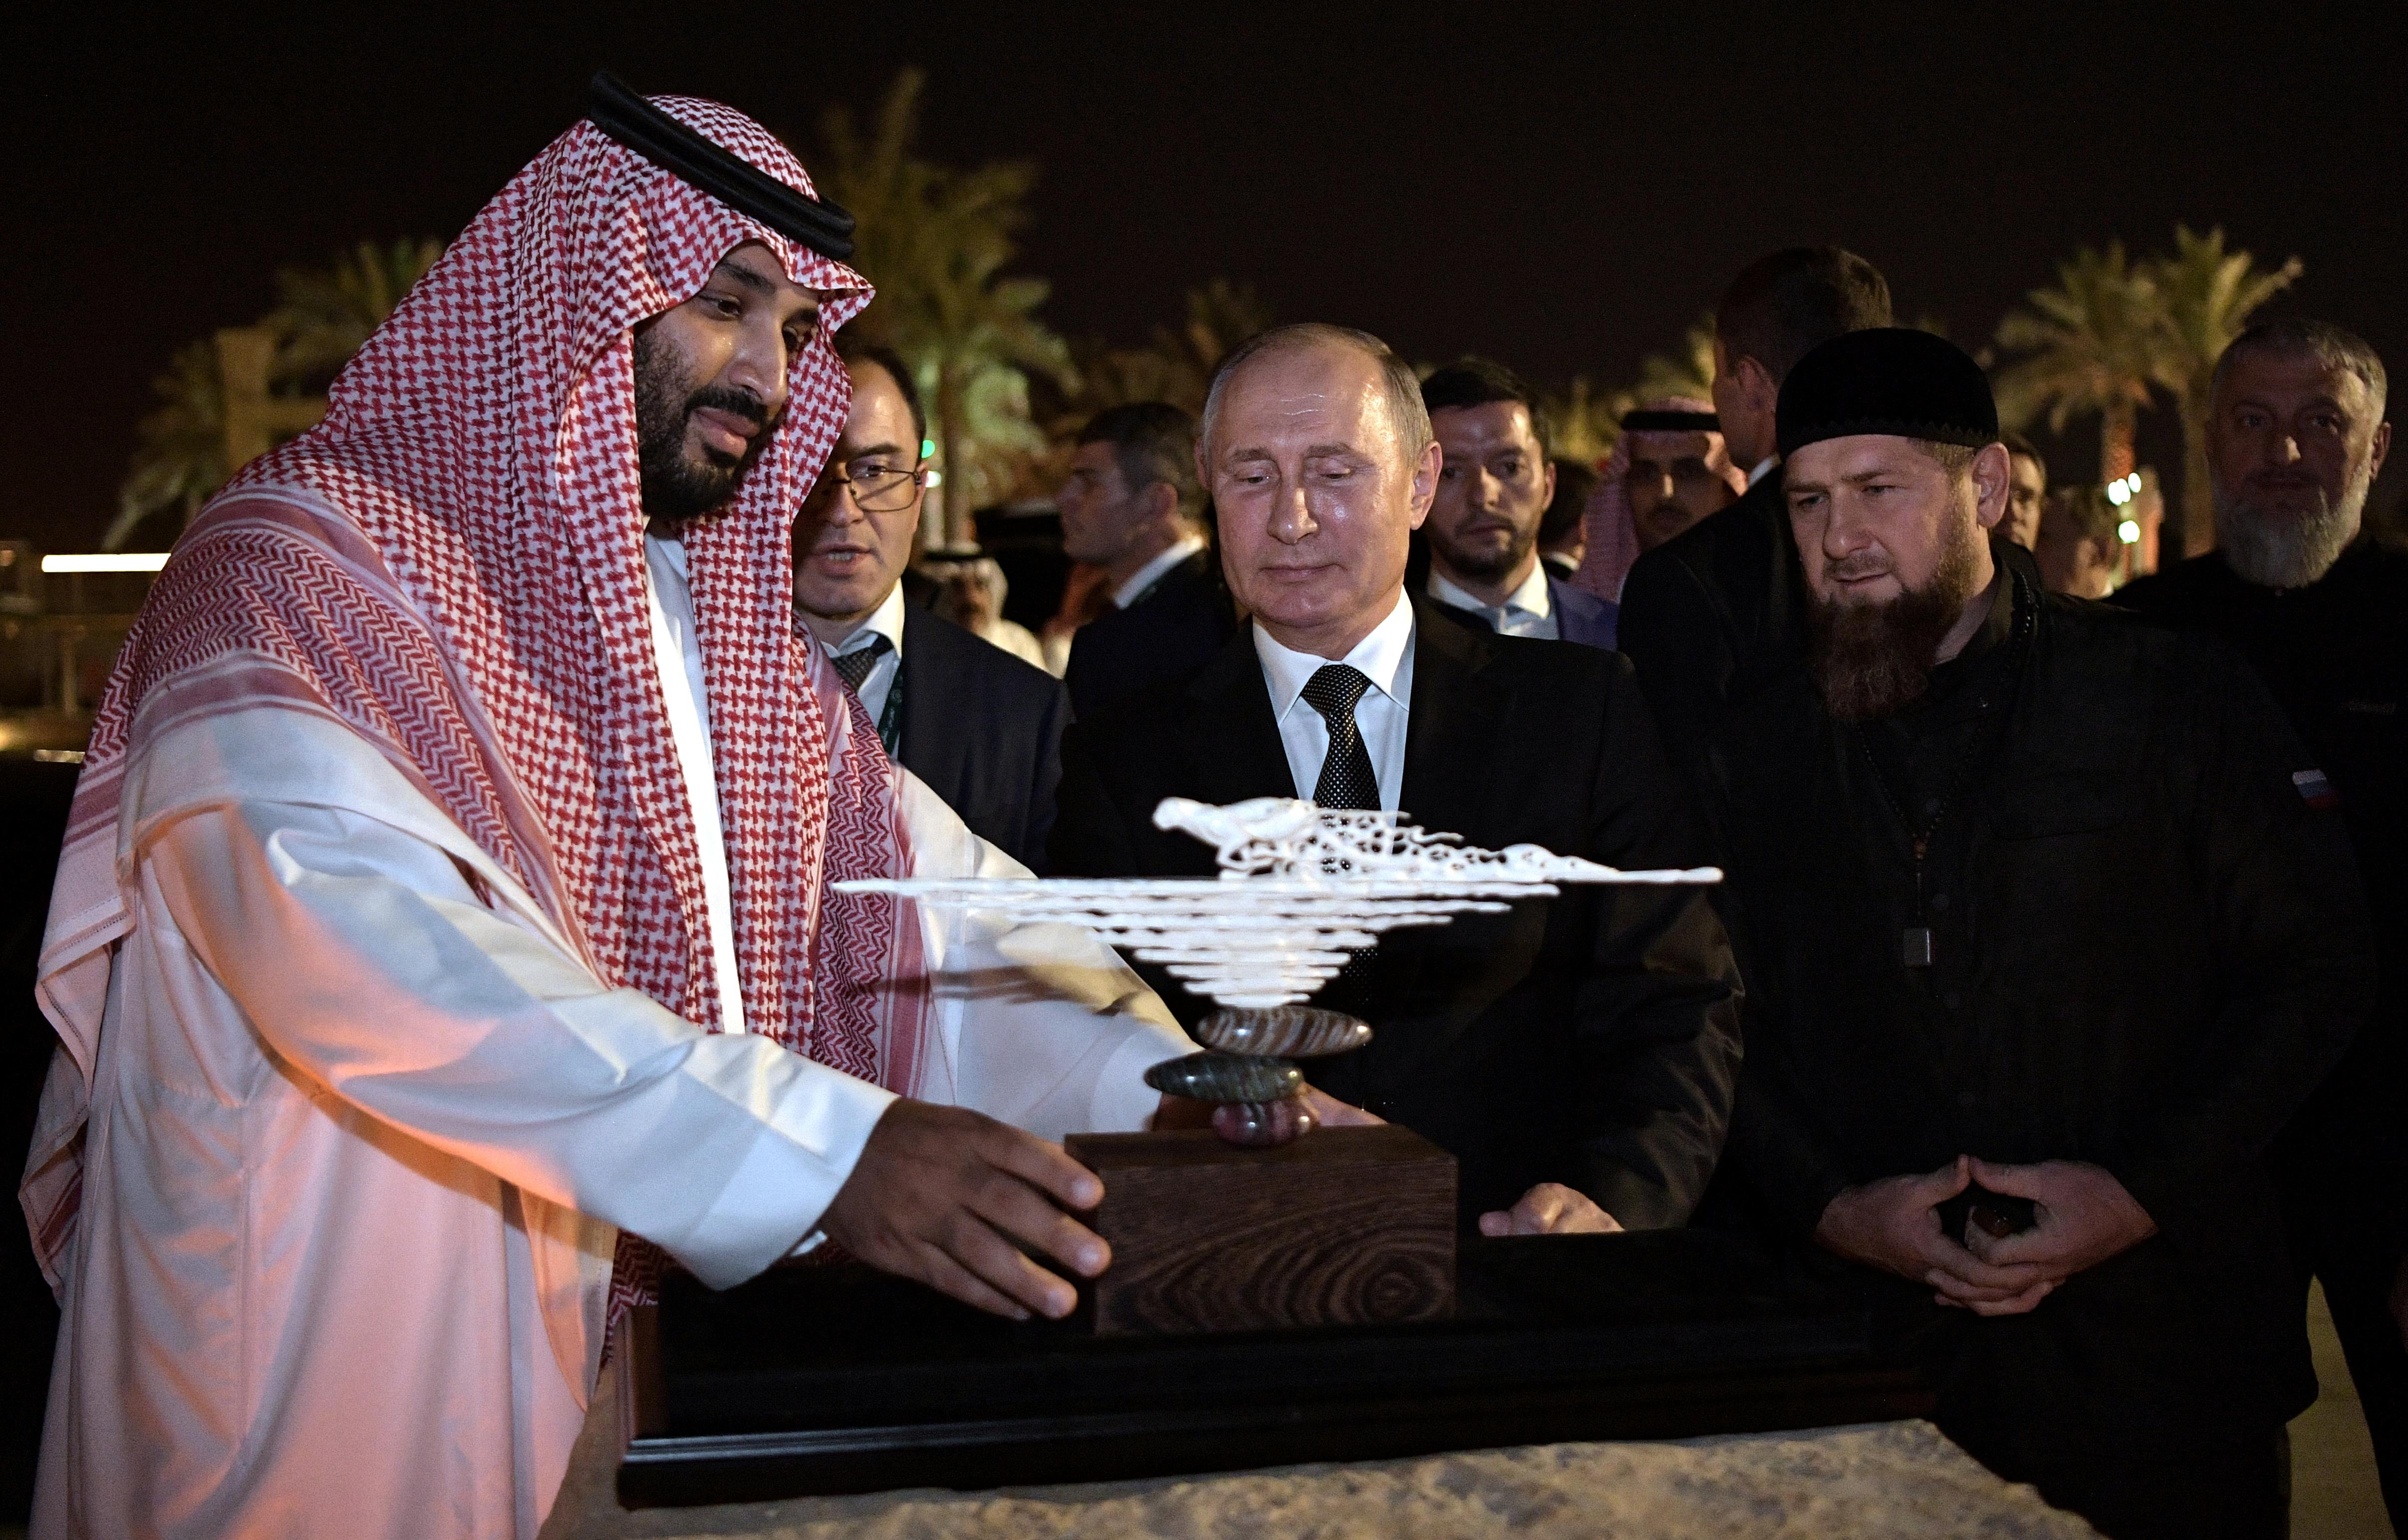 Saudi visit signals Putin's growing Middle East influence